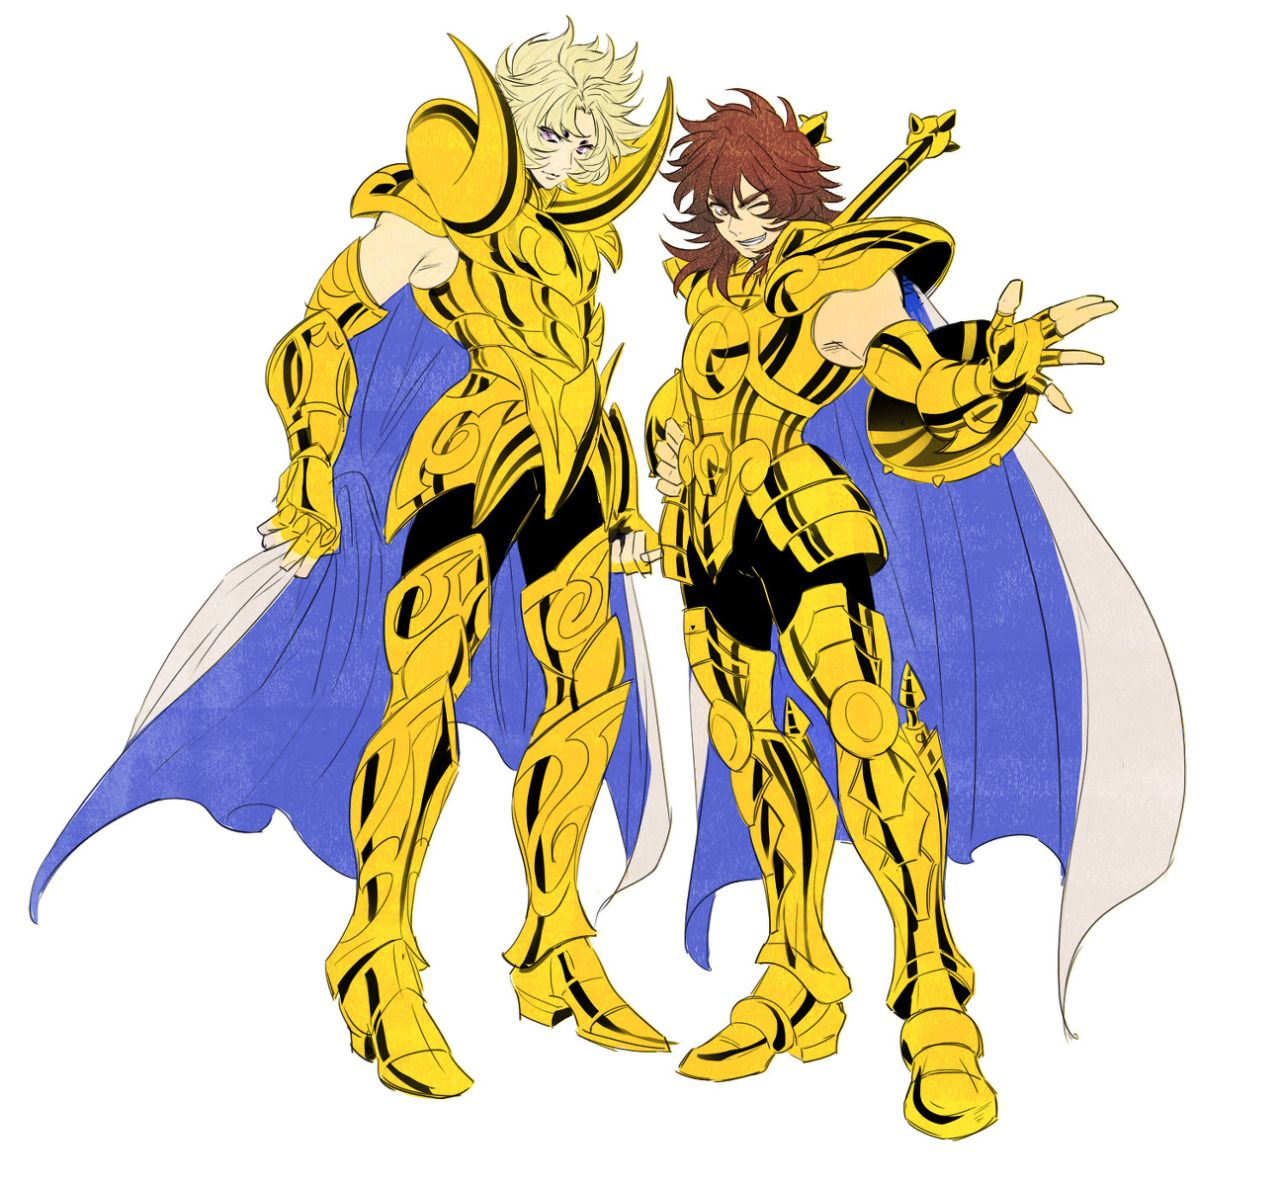 Saint Seiya Libra Saint Seiya Knights Anime Comics Aries Shion Libra